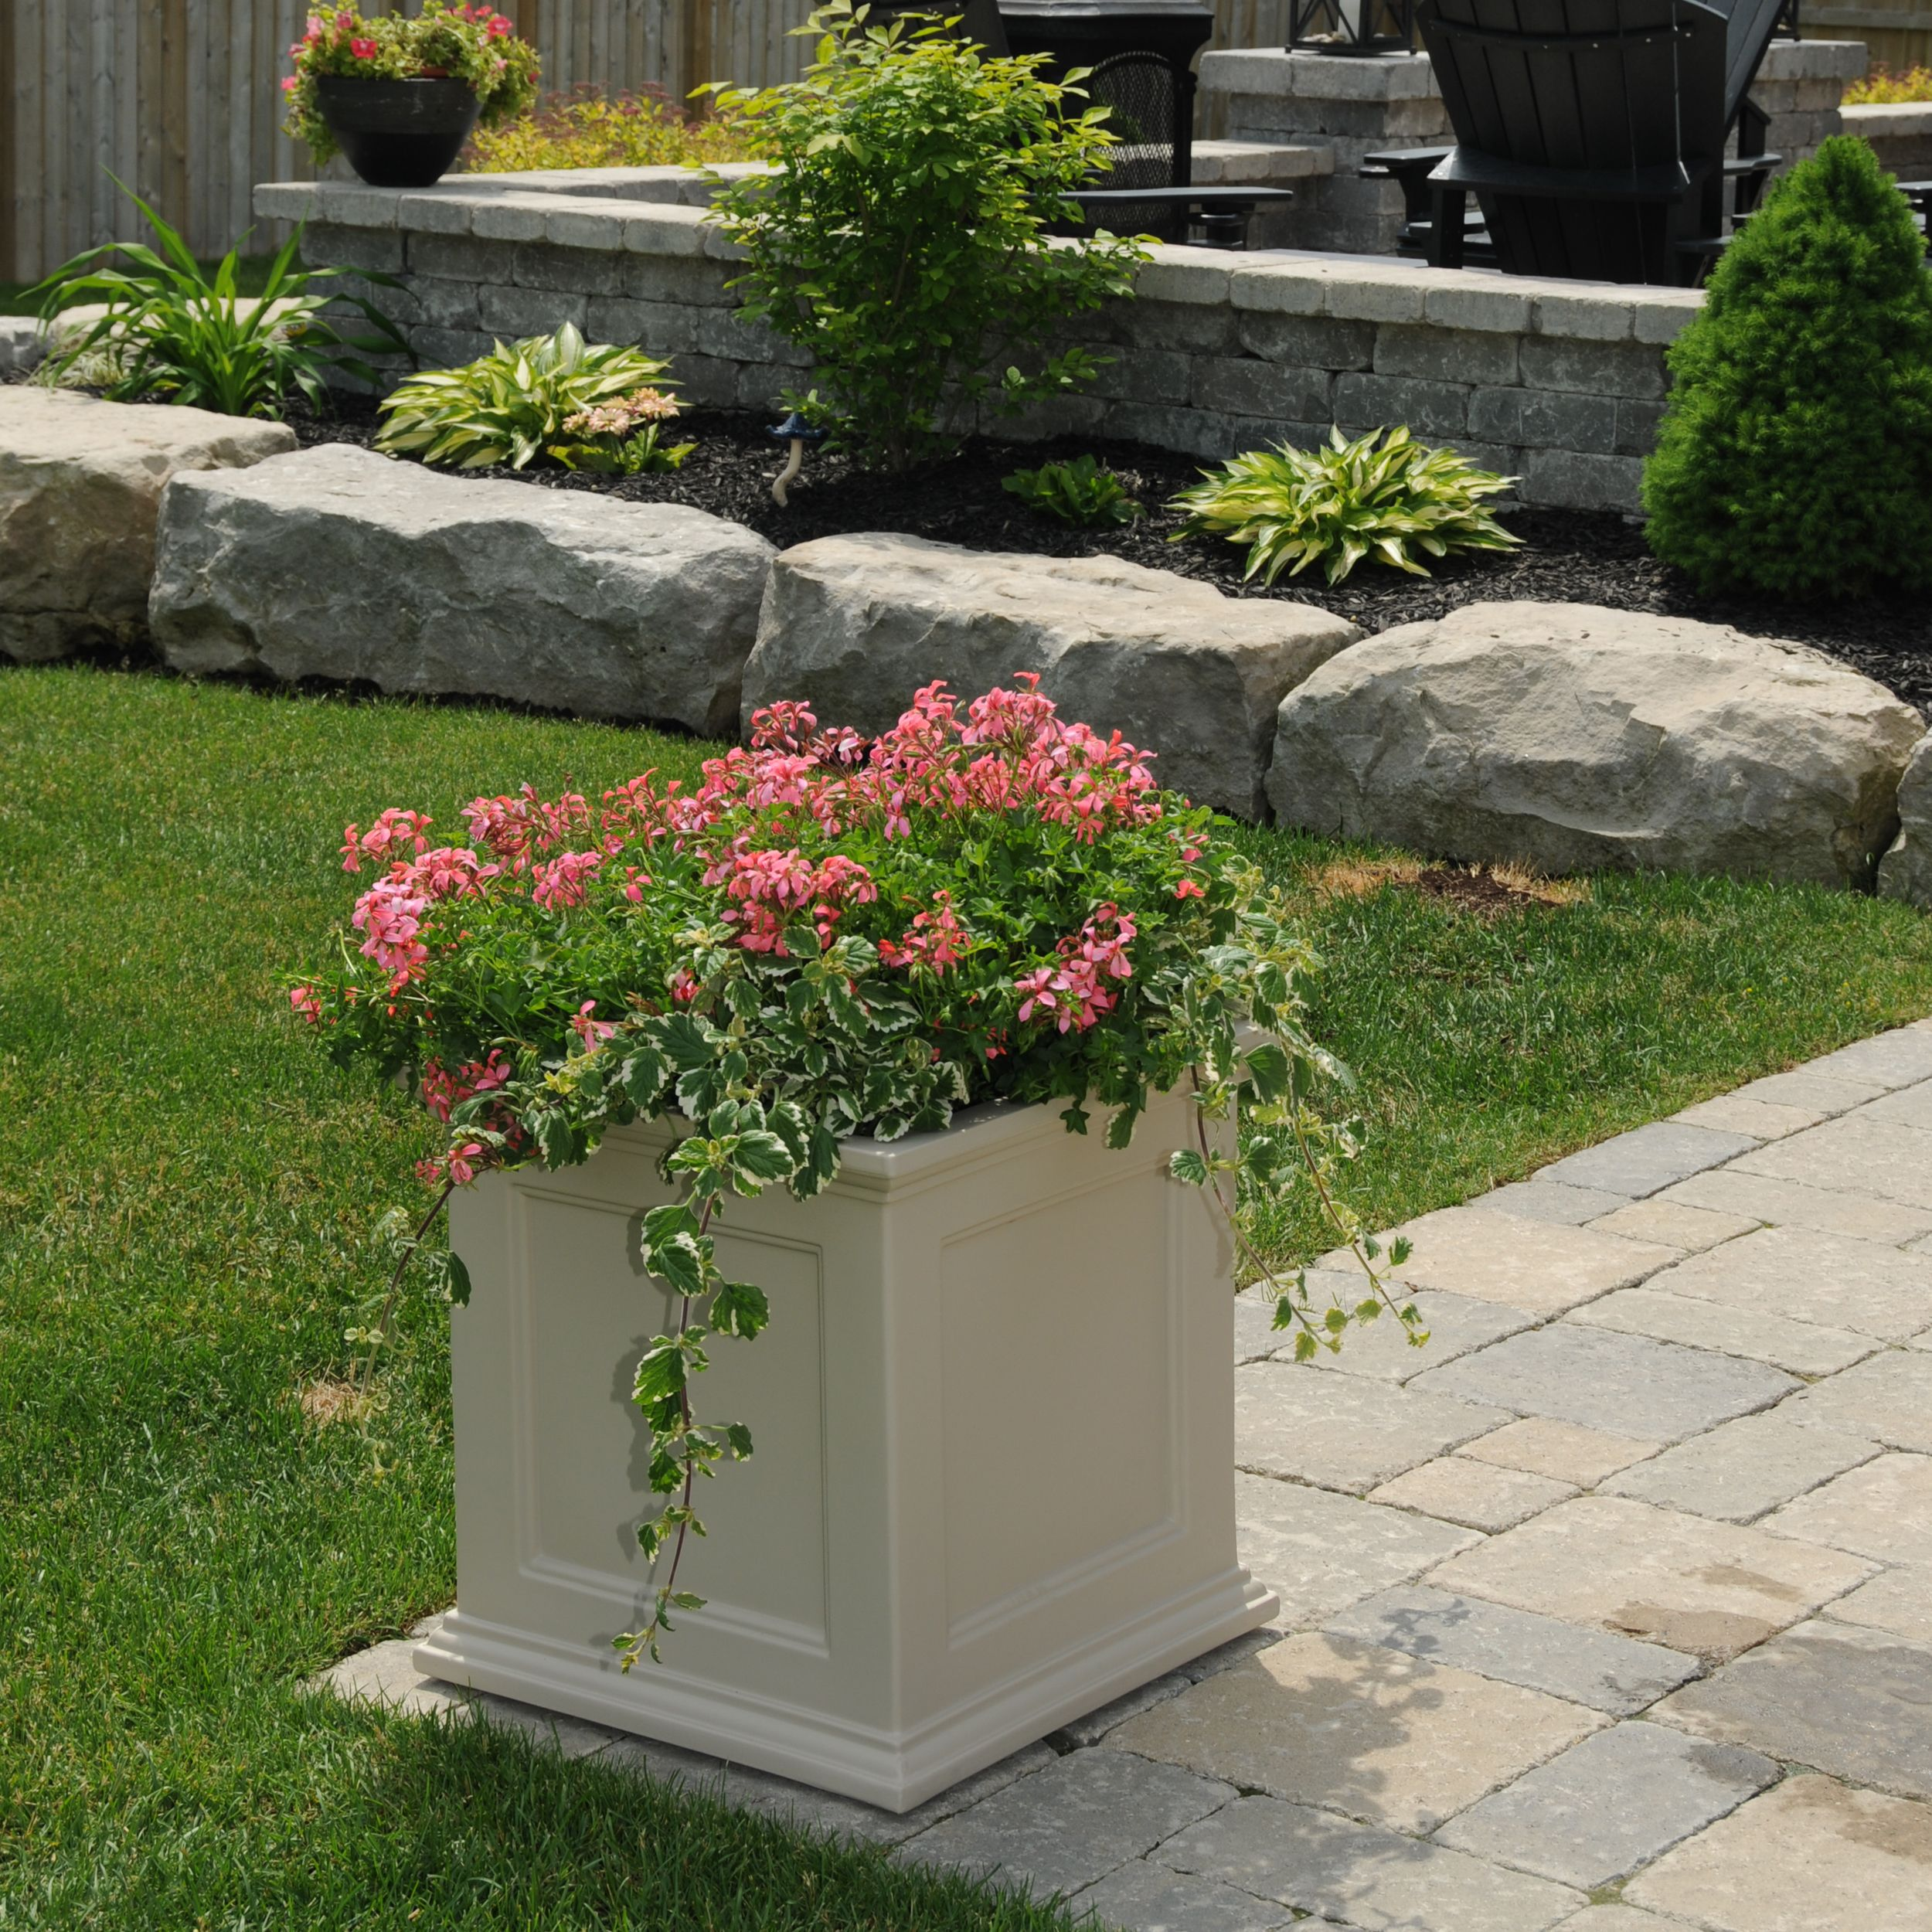 Mayne Fairfield 20 x 20 patio planter in clay Made in the USA